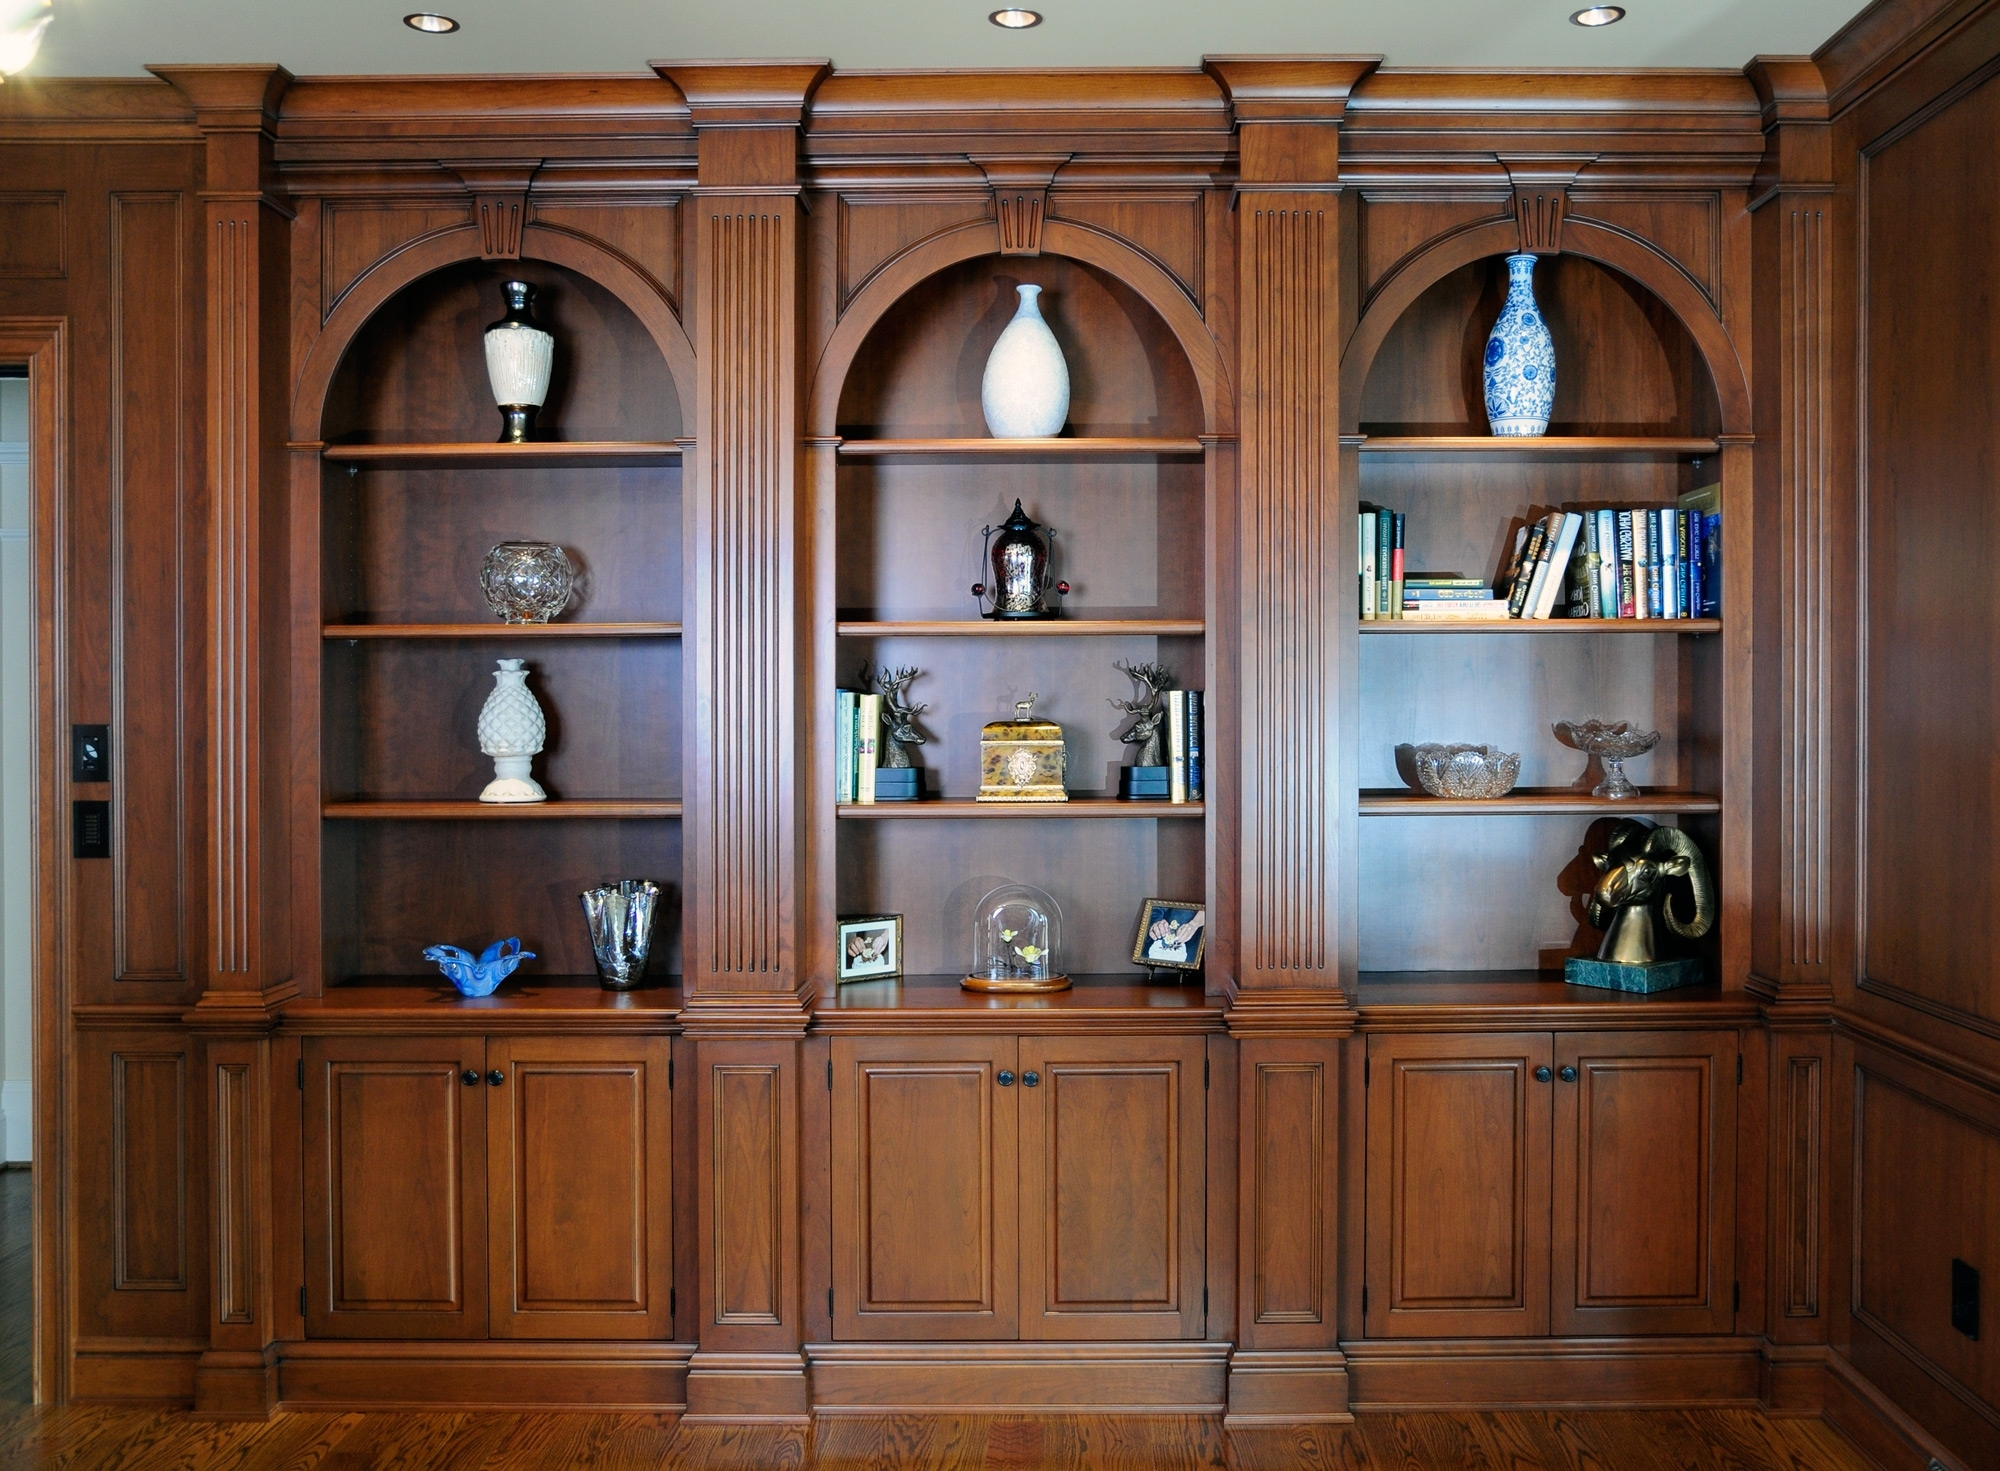 Most Current Elegant Arched Cherry Wood Bookcases – Custom Cabinetryken Leech Within Cherry Wood Bookcases (View 11 of 15)